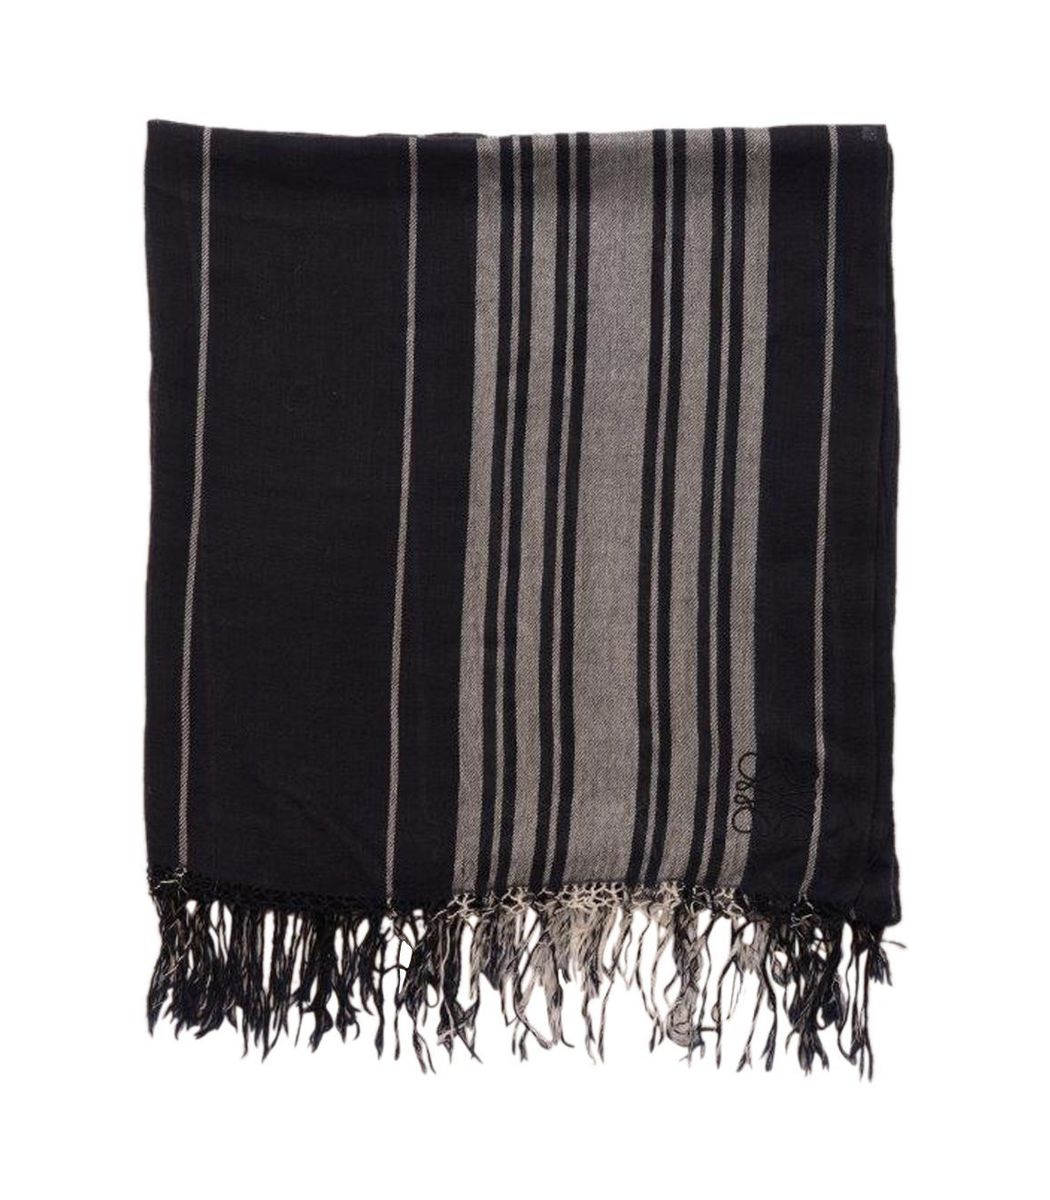 Loewe Striped Cashmere Scarf